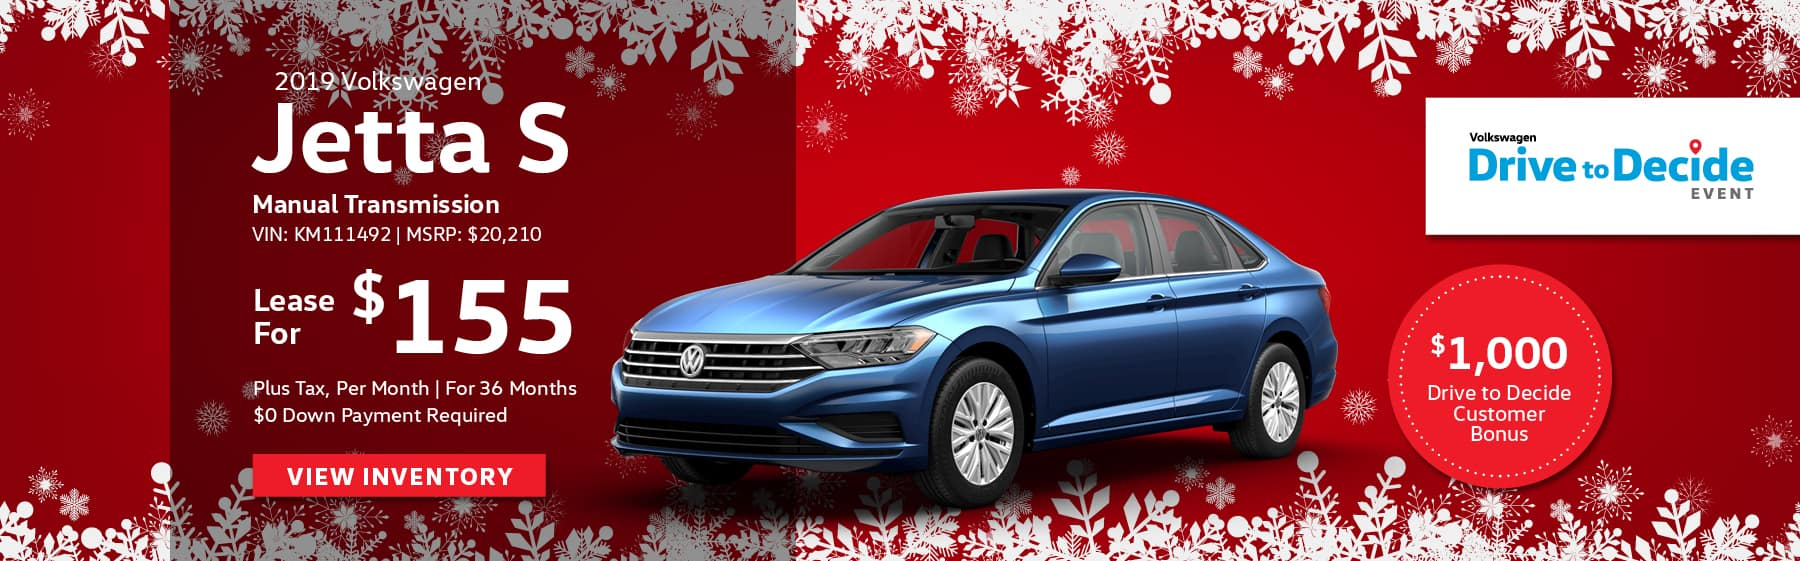 Lease the 2019 Volkswagen Jetta S for $155 plus tax for 36 months. $0 Down payment required.